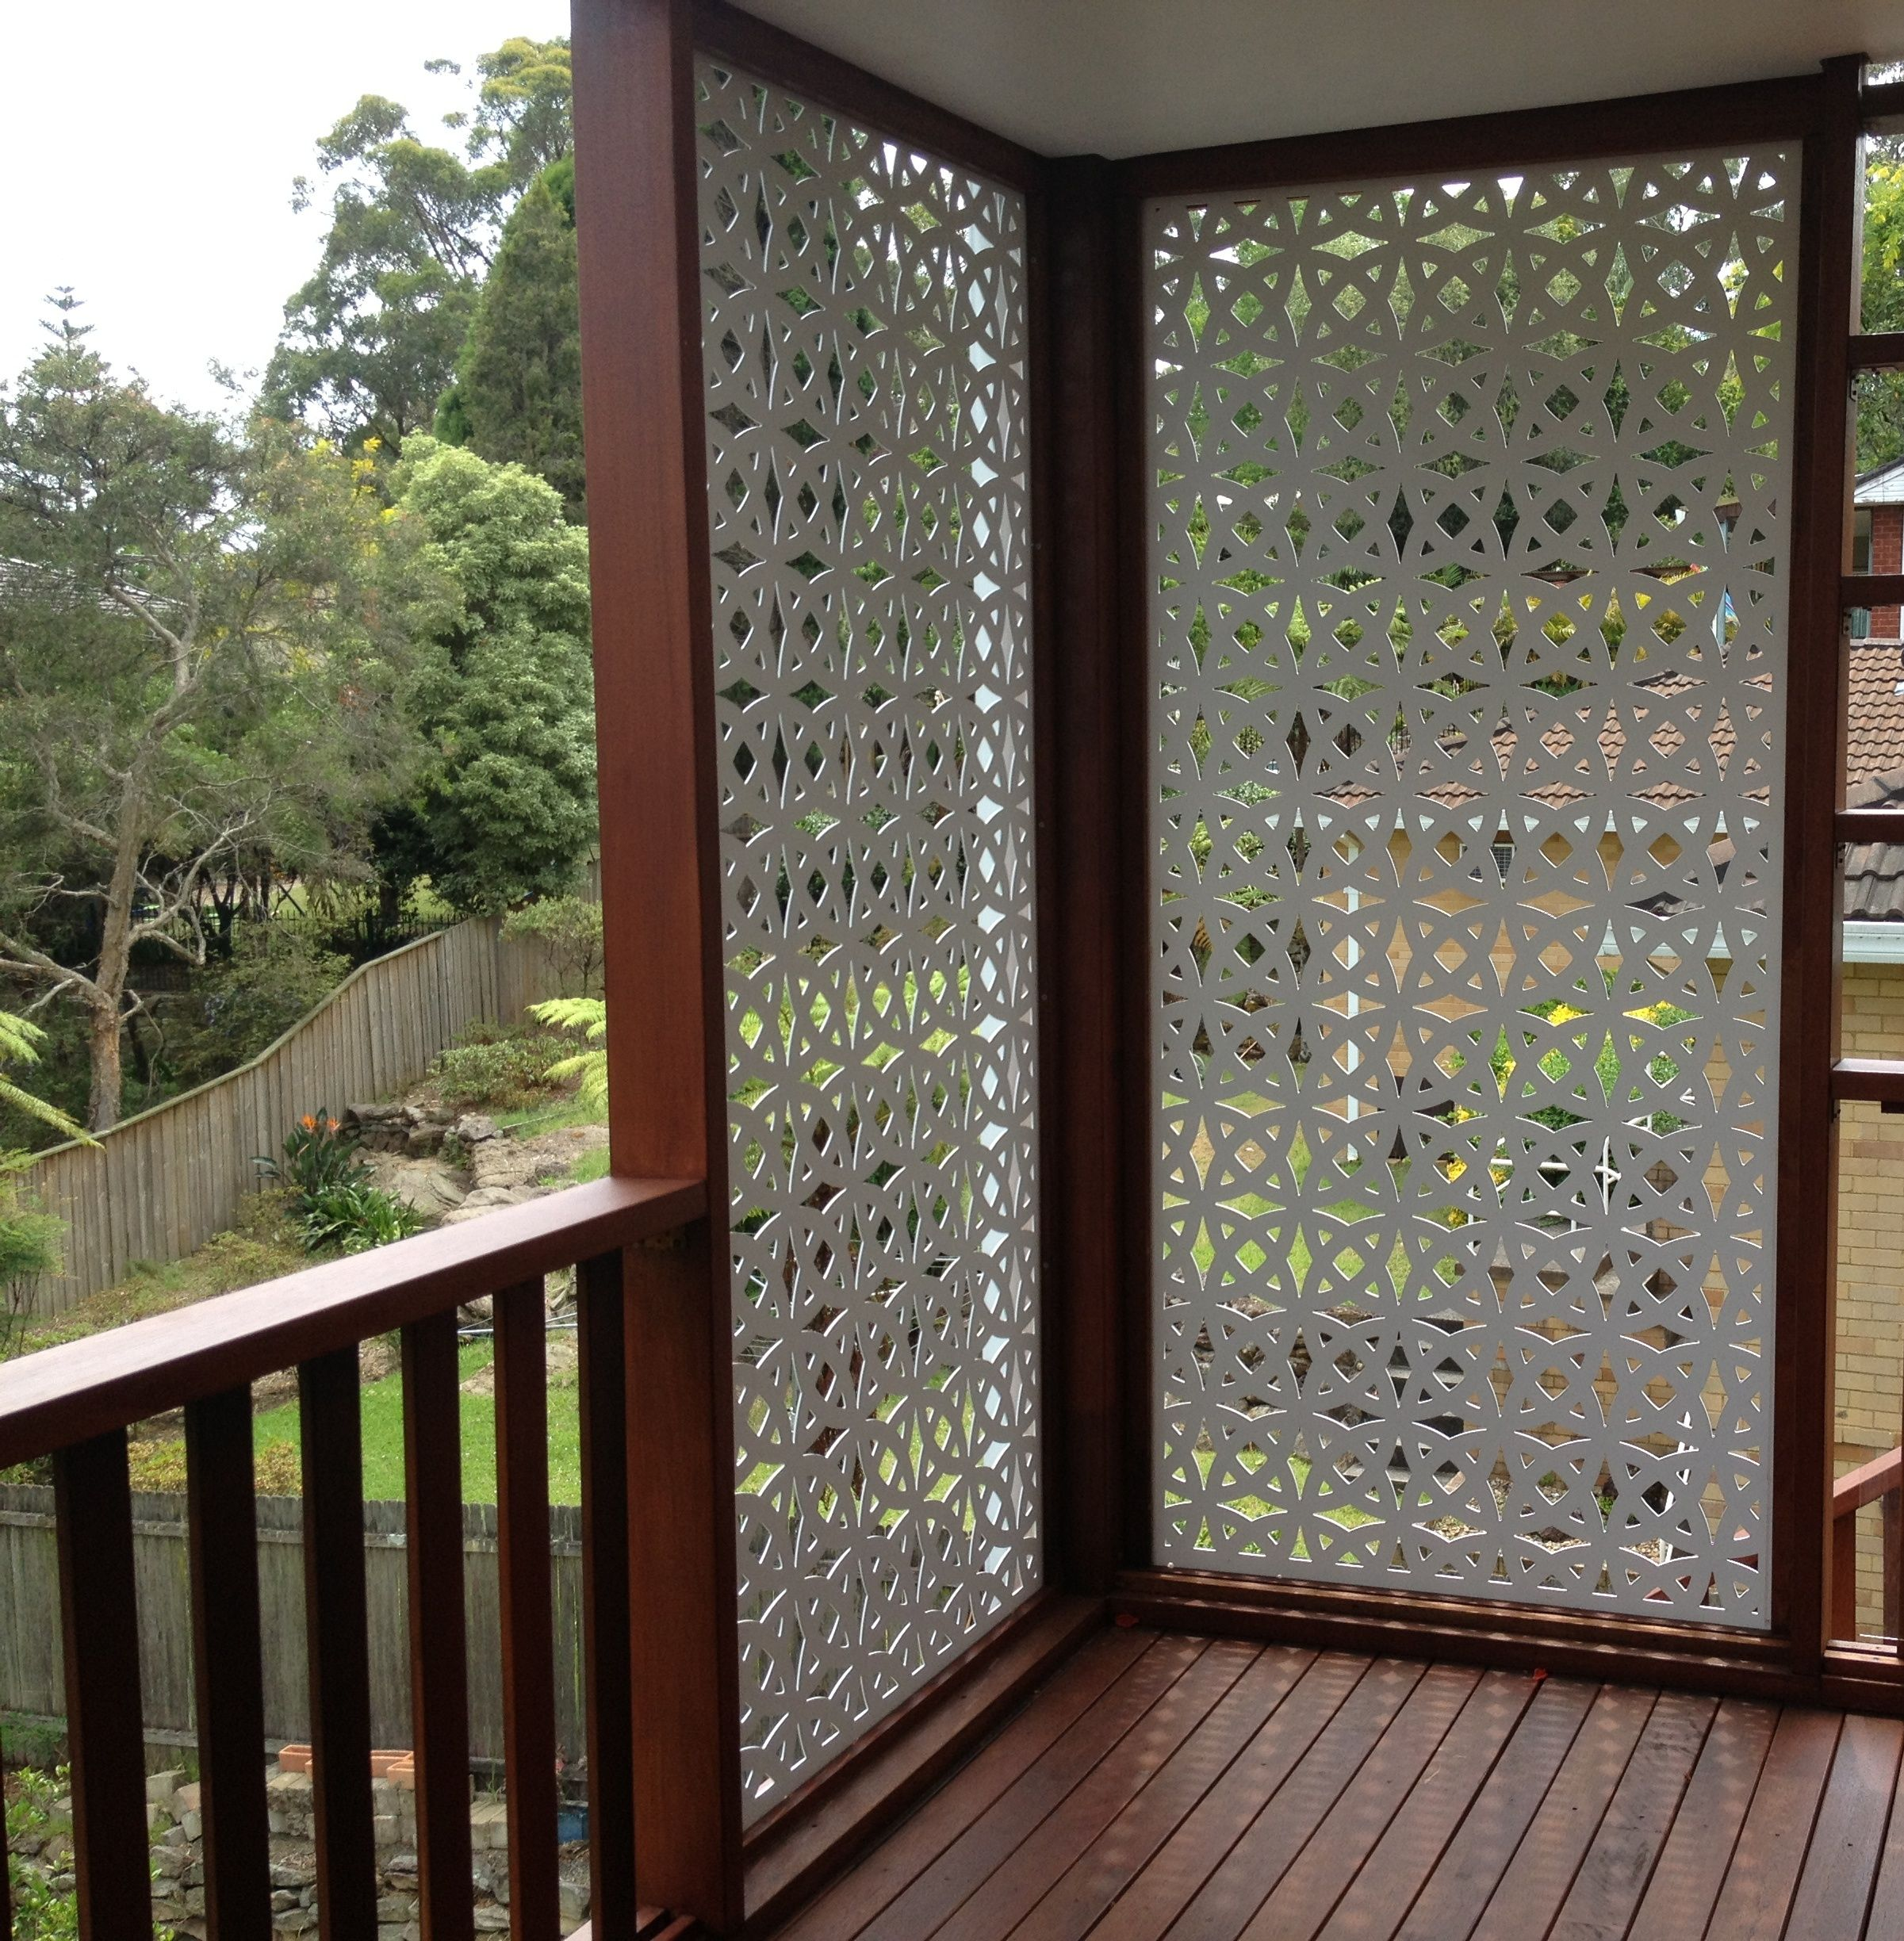 10 best outdoor privacy screen ideas for your backyard Relaxed backyard deck ideas